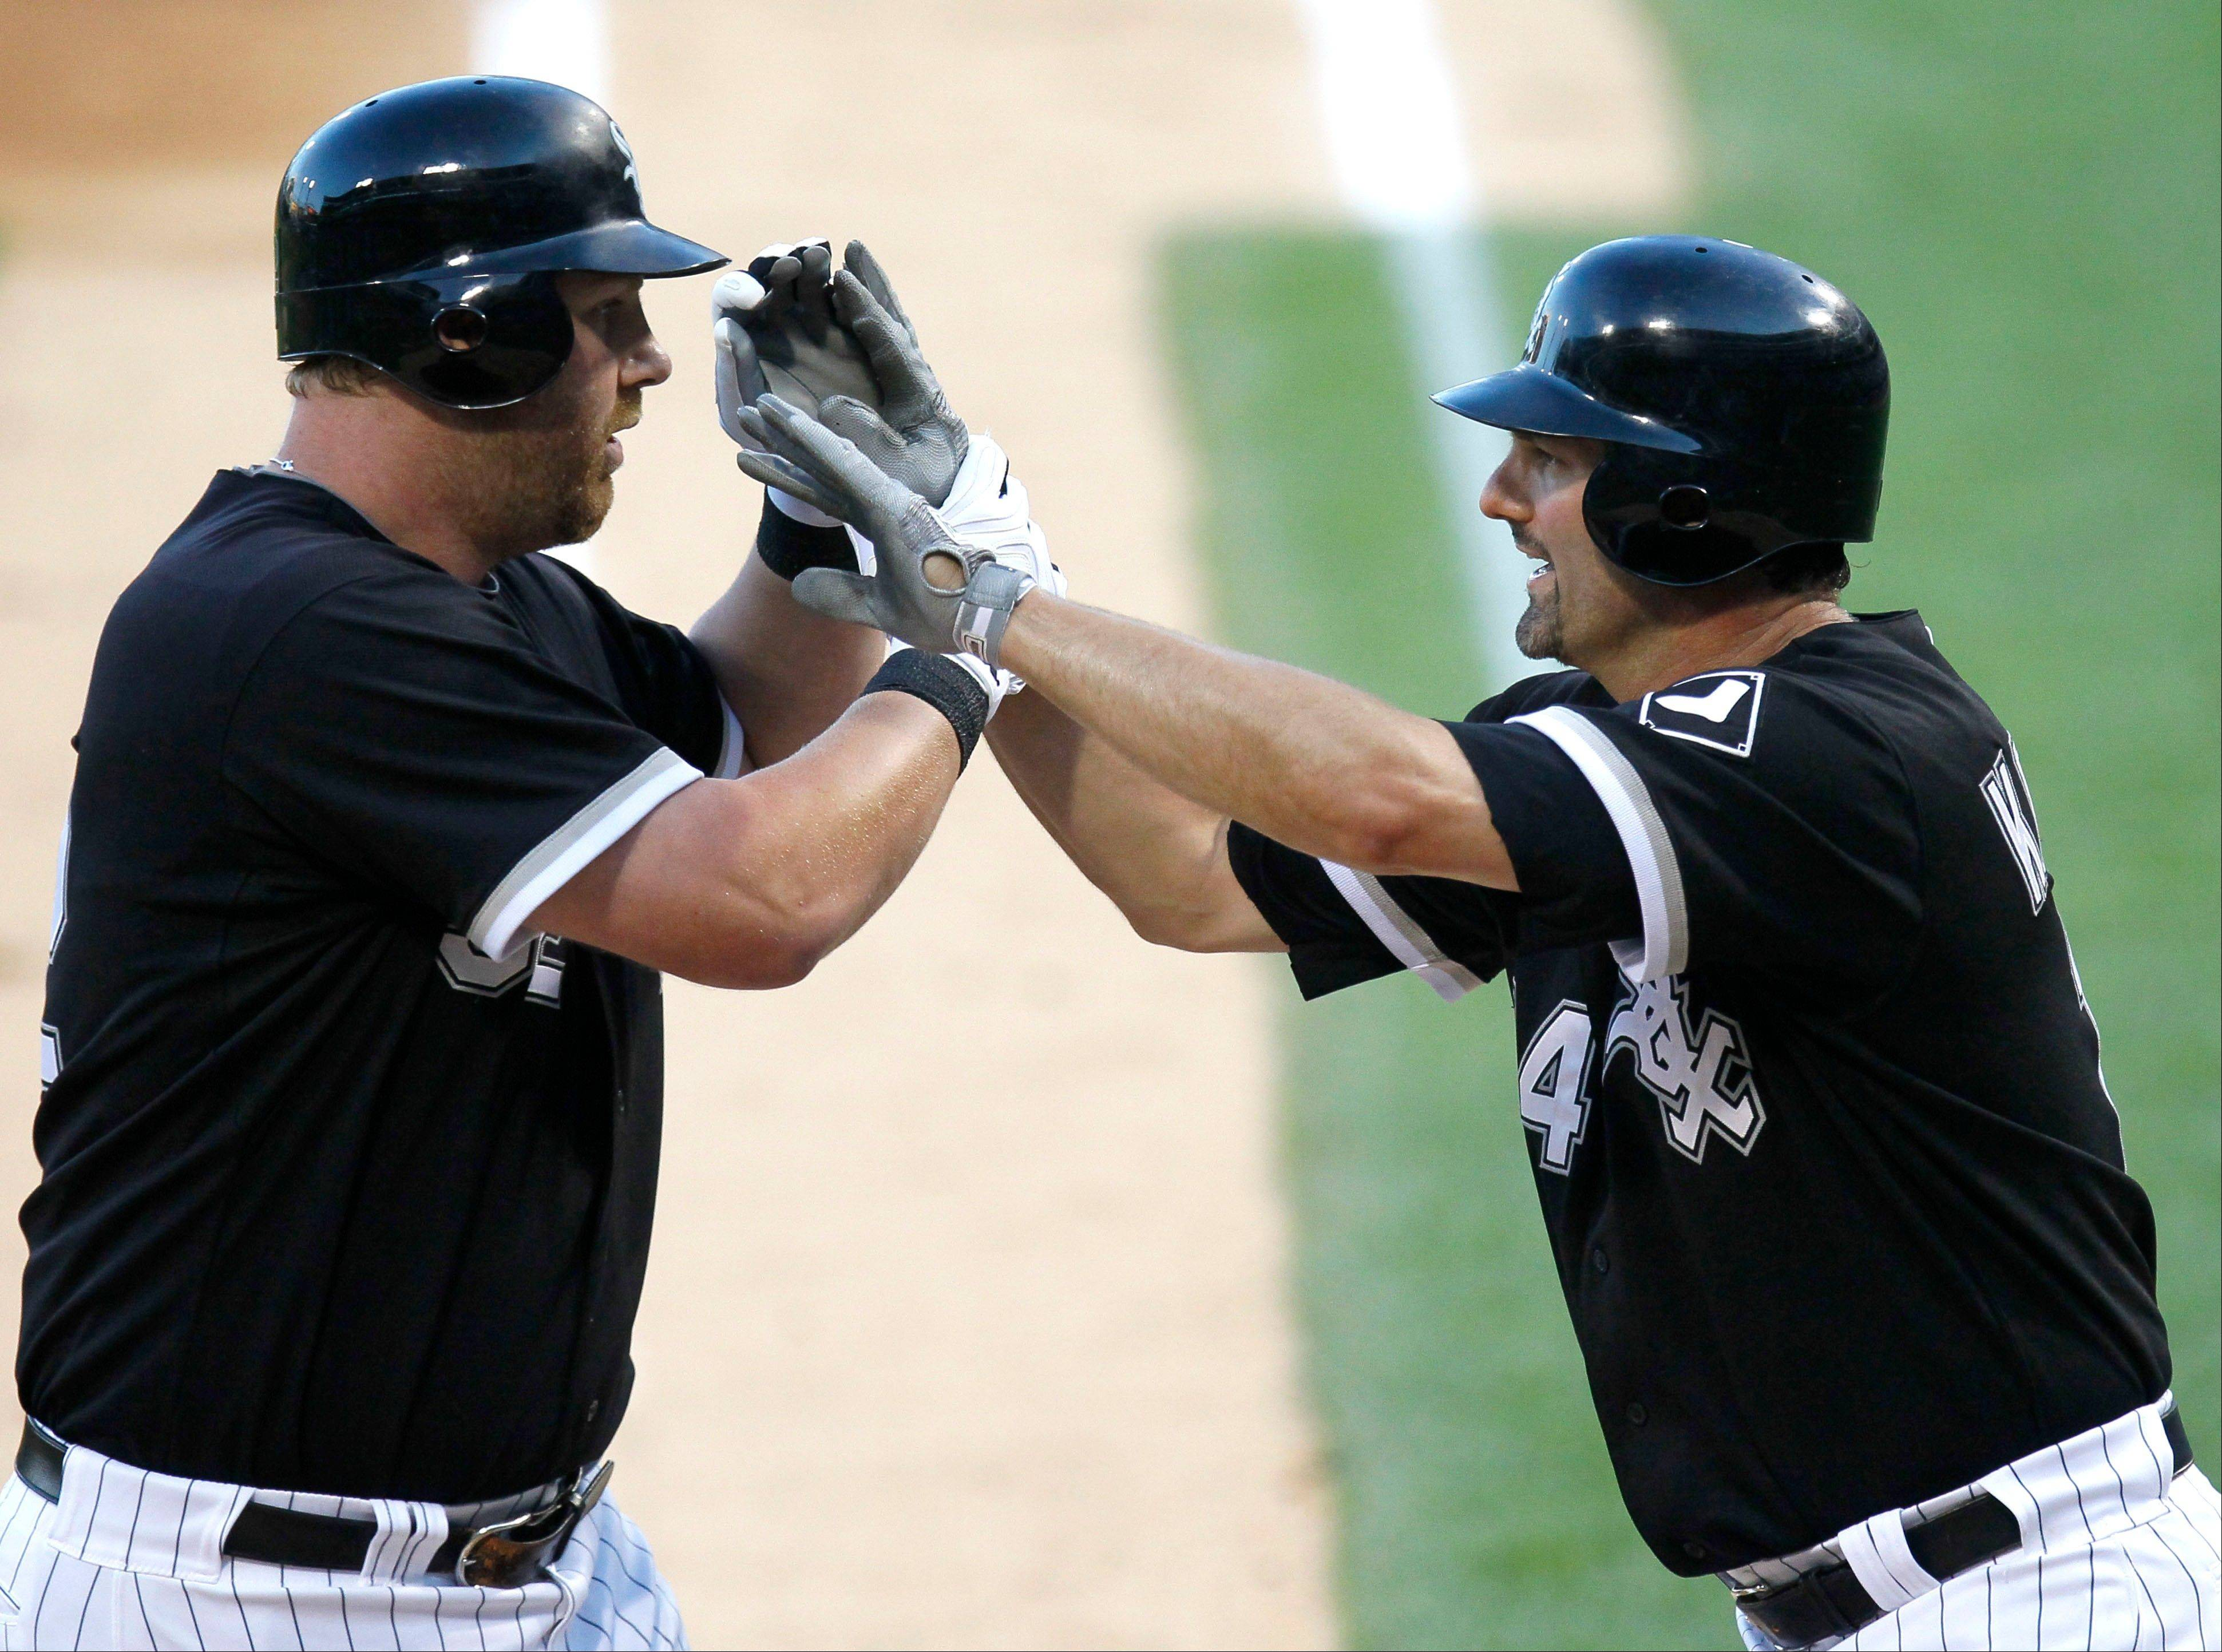 Adam Dunn, left, will resume designated hitter duties when Paul Konerko returns to the lineup at first base. Konerko has missed two games after being hit in the left knee with a pitch Sunday against the Tigers.